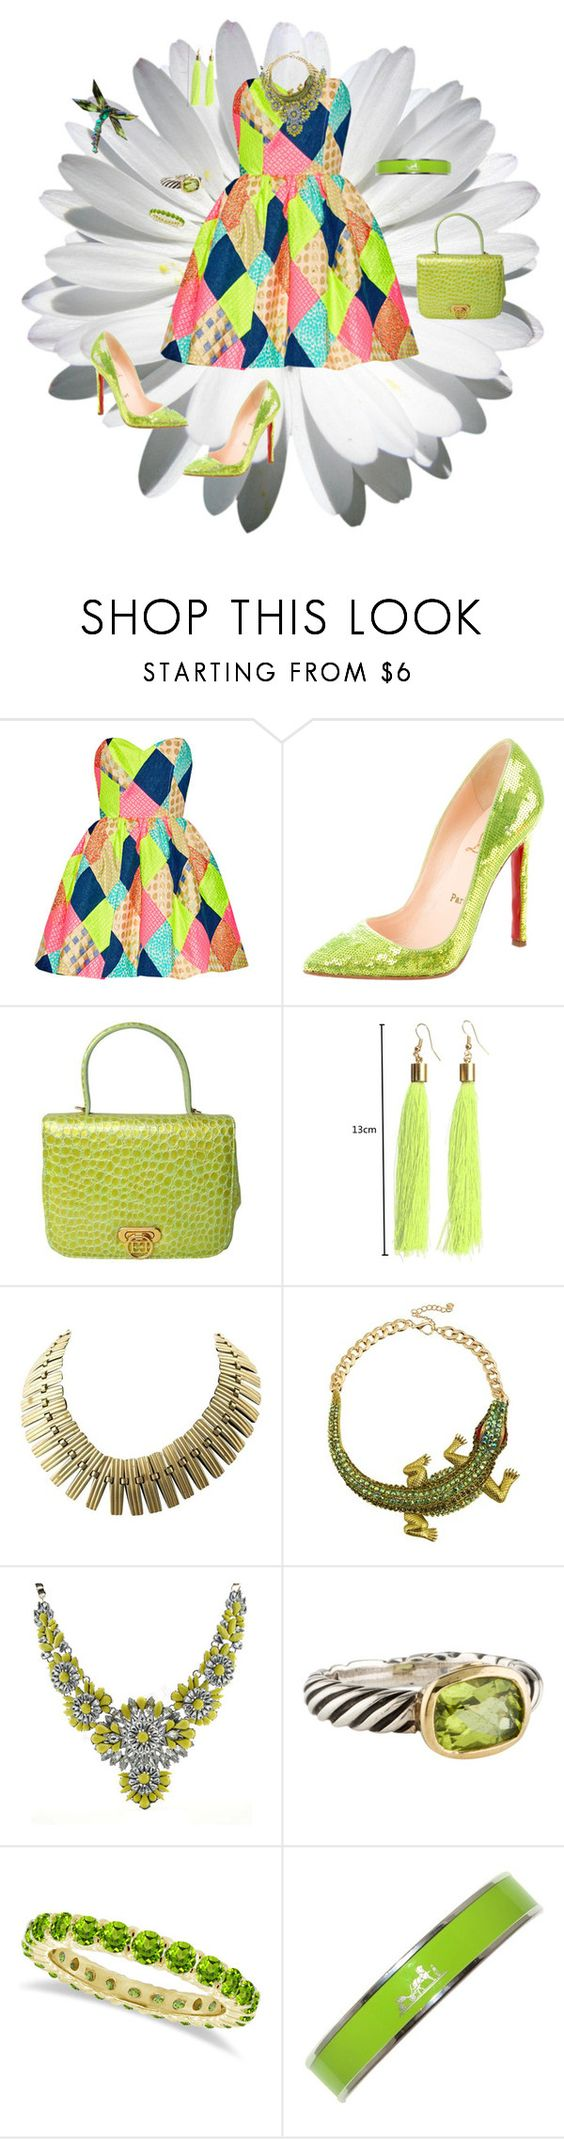 """Strapless Mini dress"" by deborah-518 ❤ liked on Polyvore featuring Christian Louboutin, ESCADA, David Yurman, Allurez and Hermès"